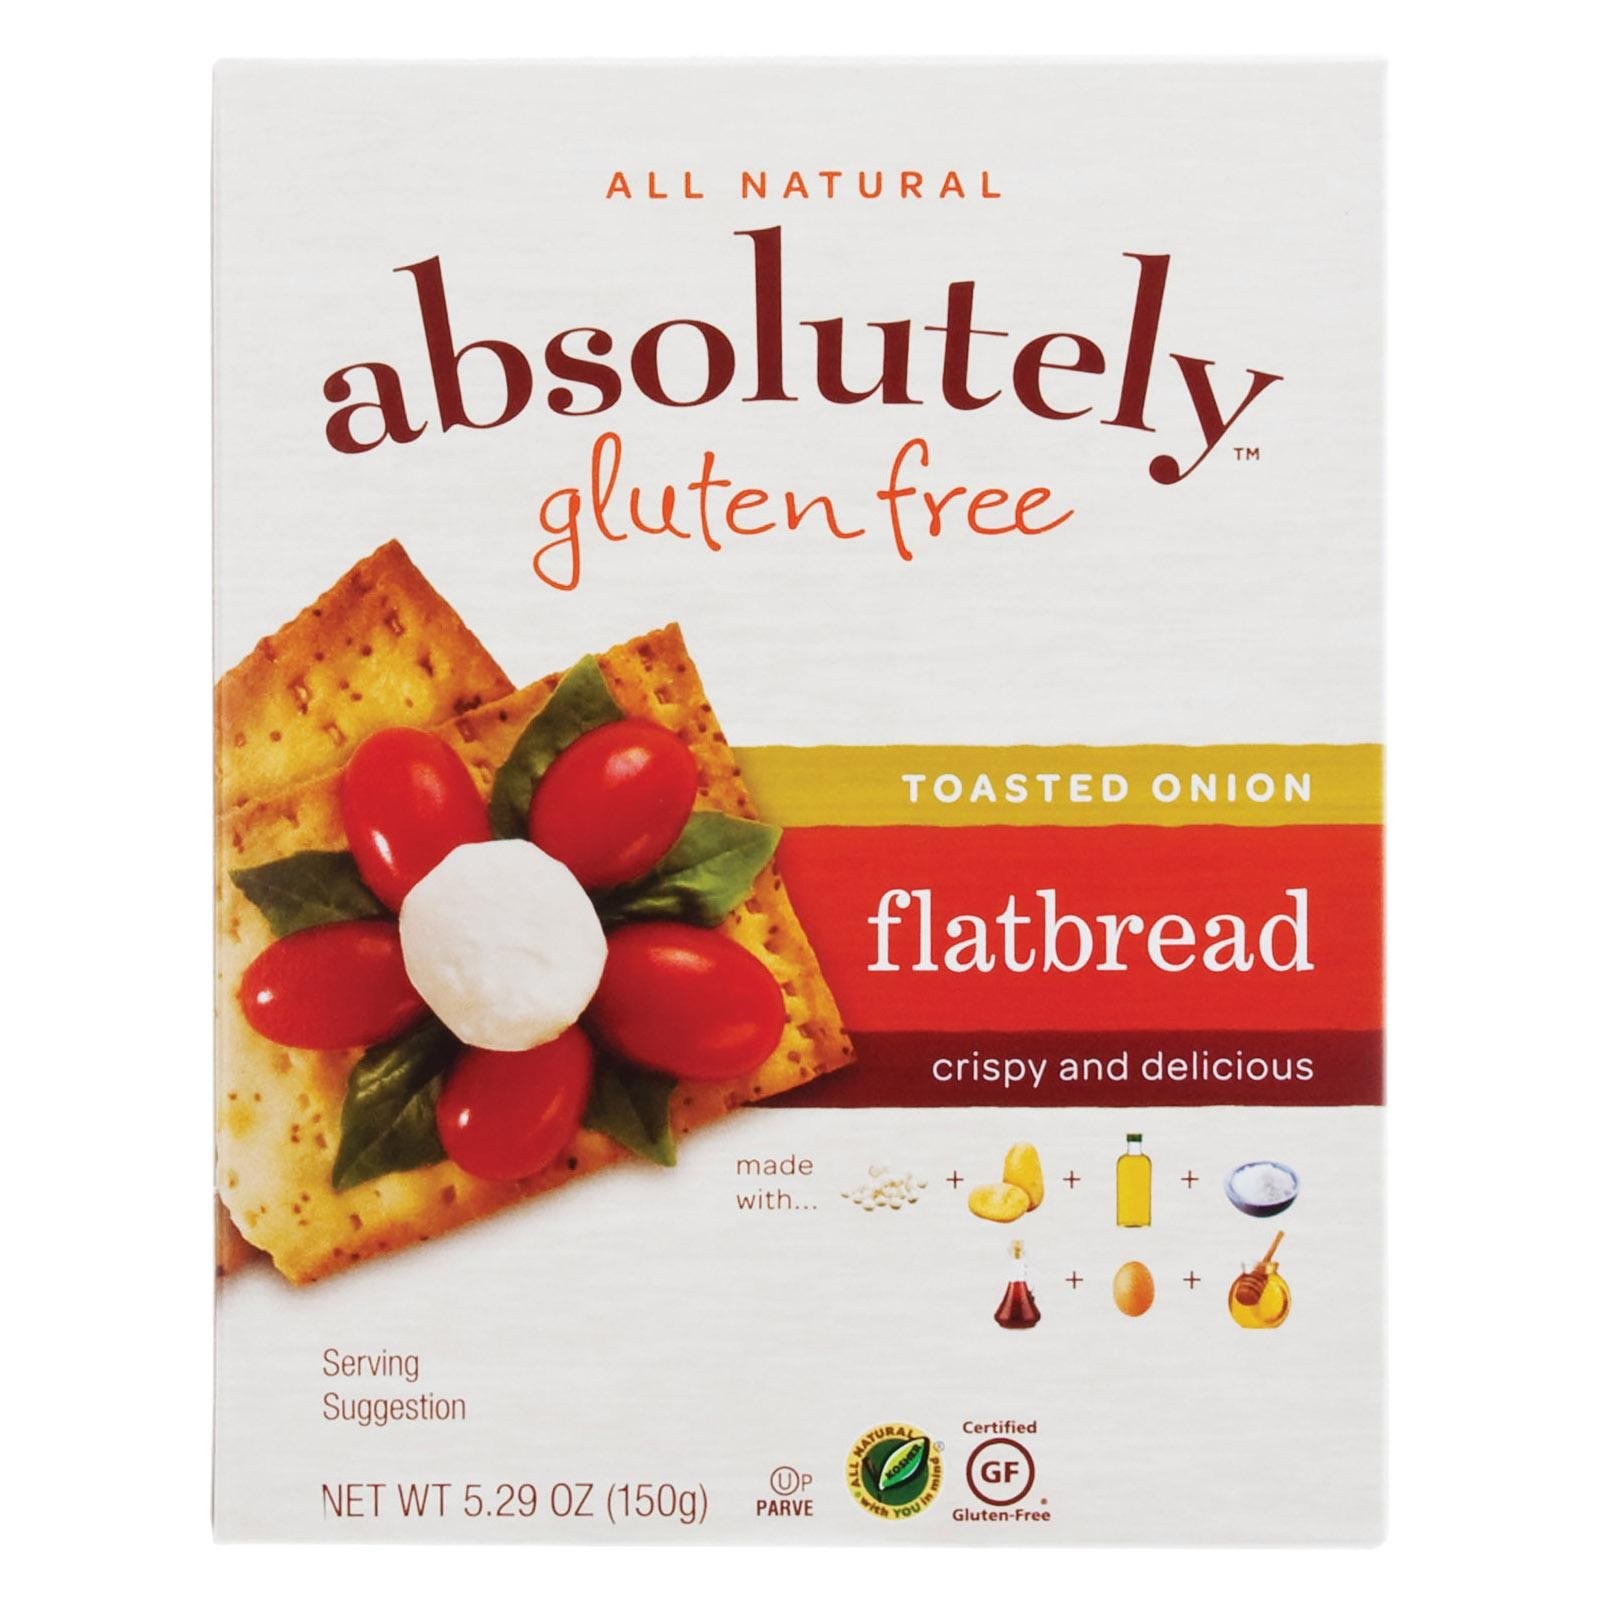 Absolutely Gluten Free Flatbread - Toasted Onion - Pack of 12 - 5.29 Oz.